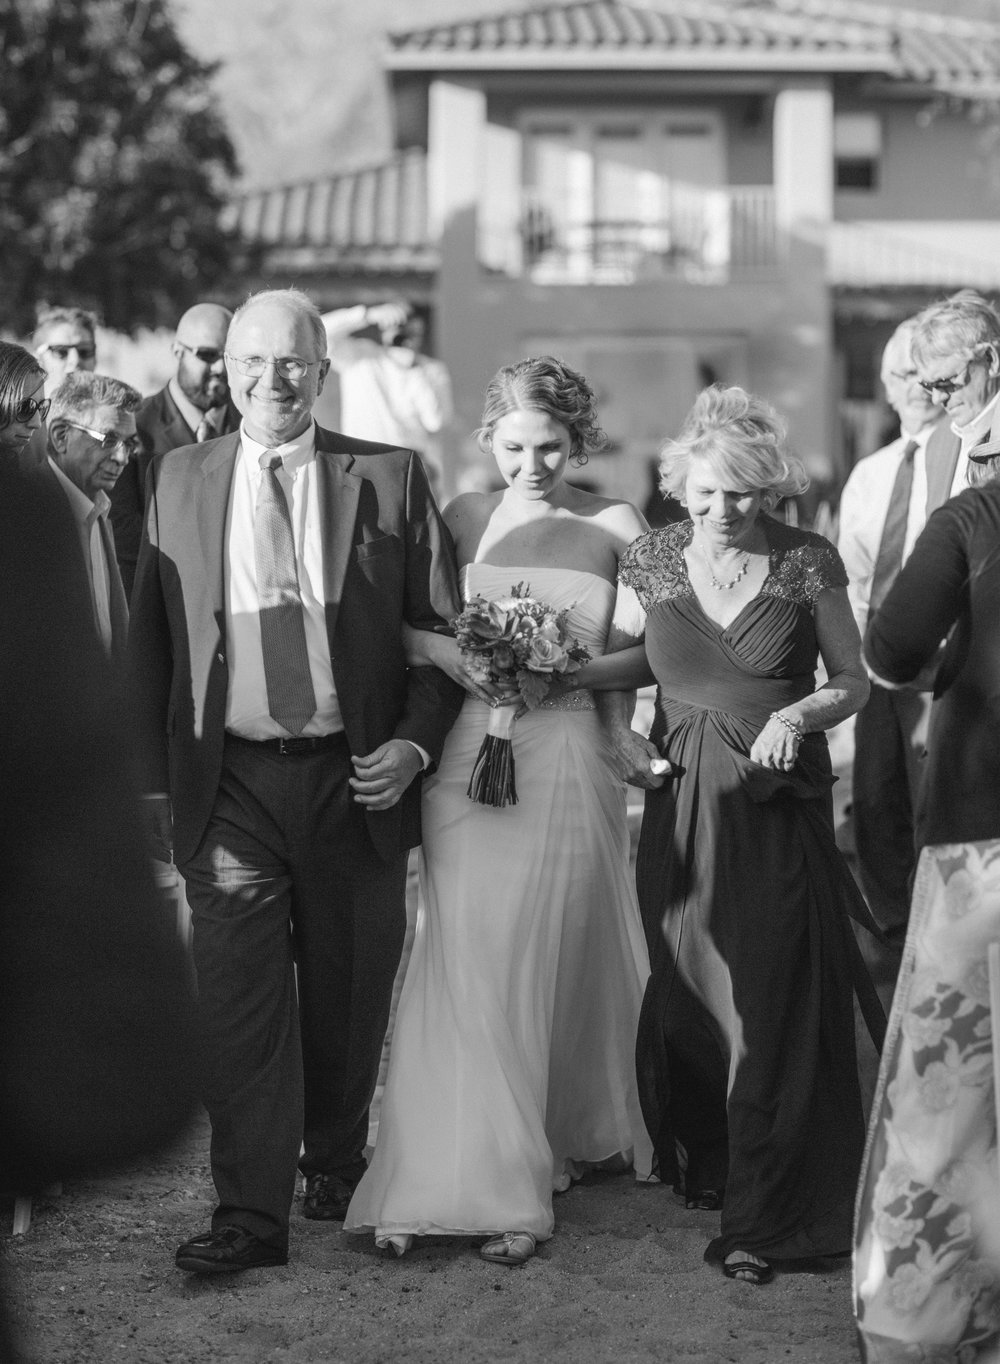 Parents walking bride down the aisle